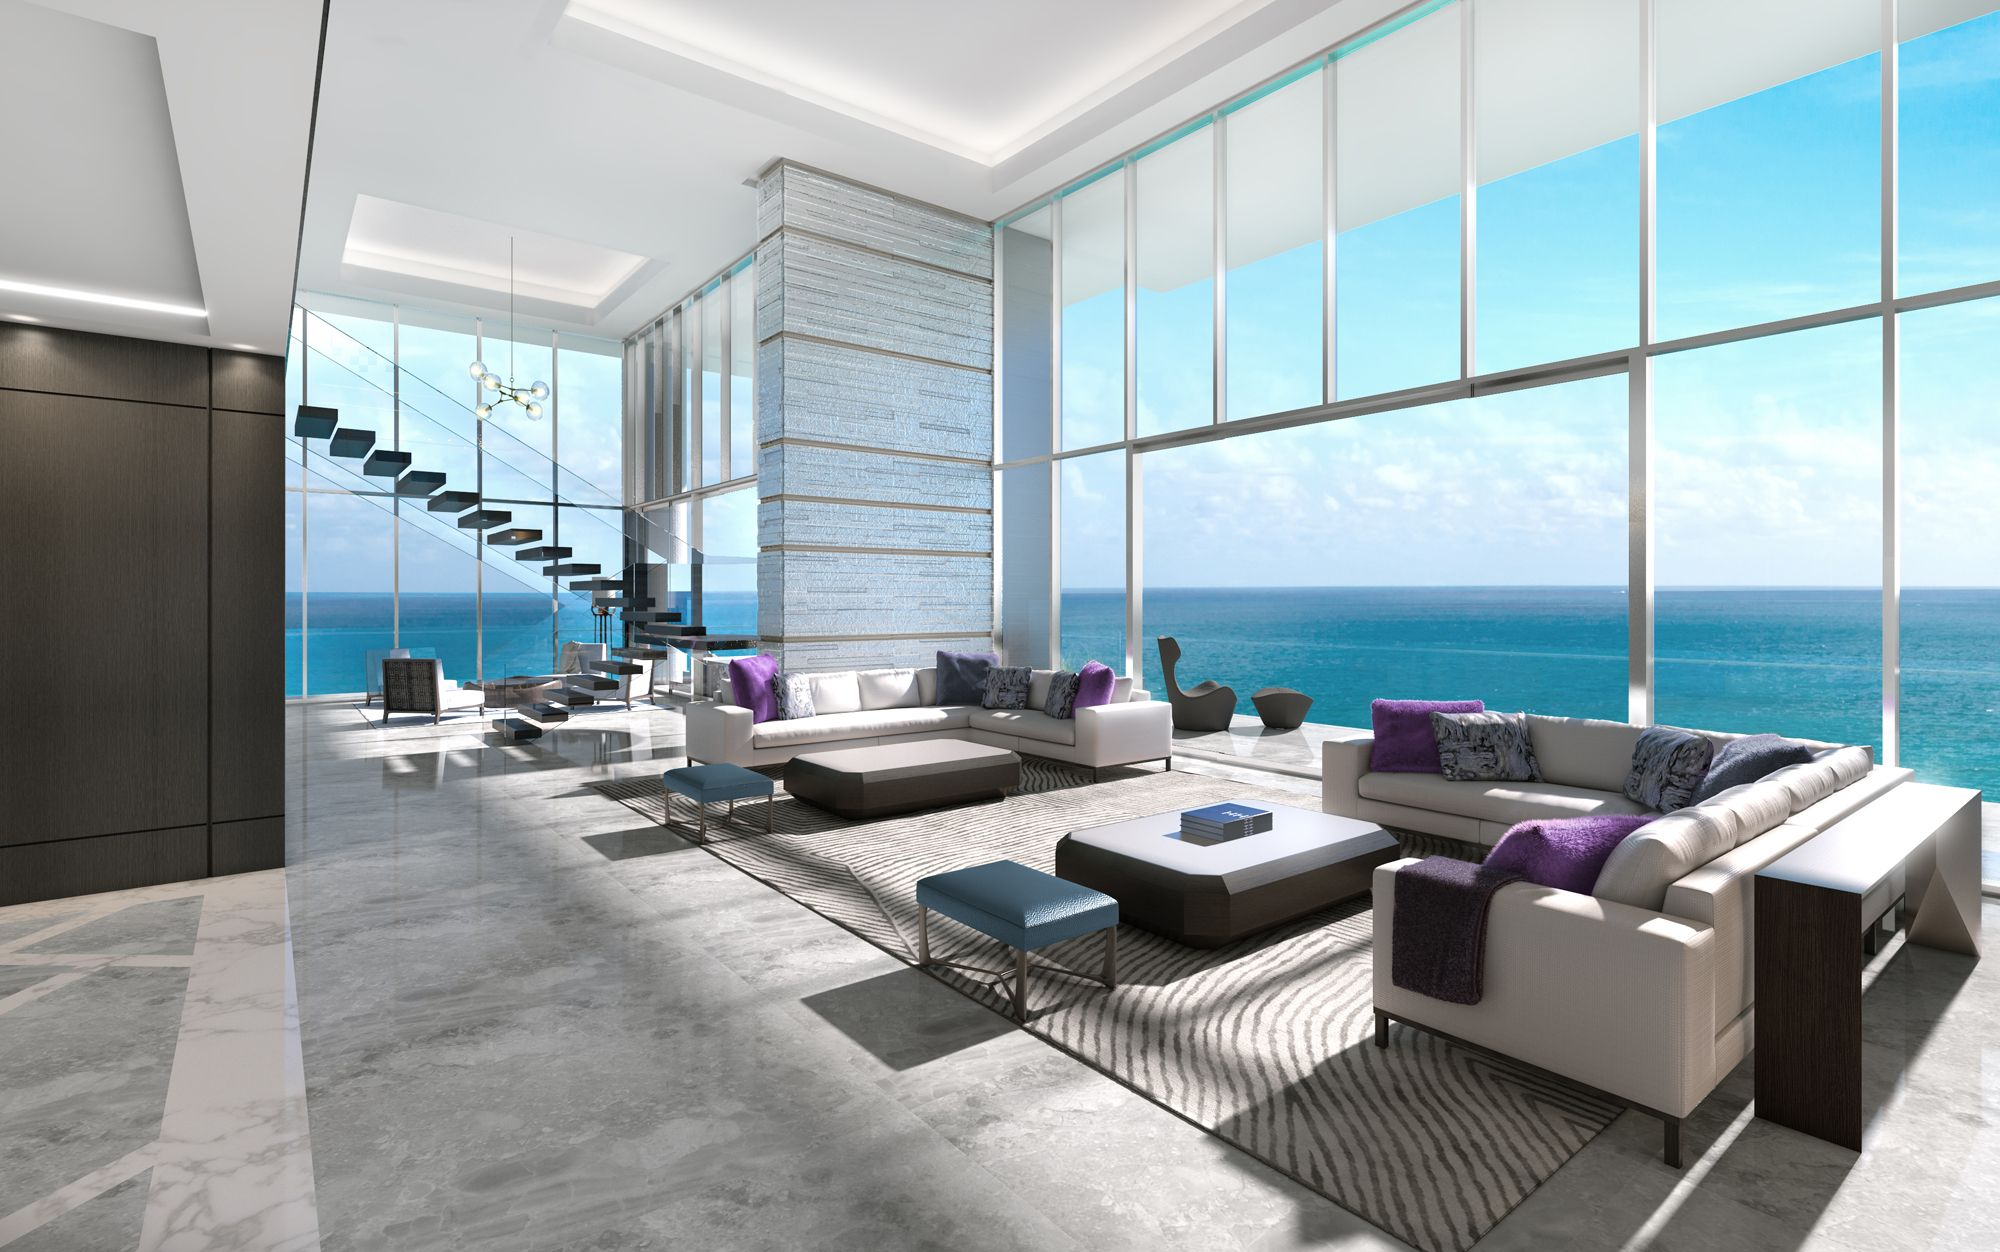 Stupendous Miami Beachs Designer Curated Latelier Penthouse Download Free Architecture Designs Sospemadebymaigaardcom